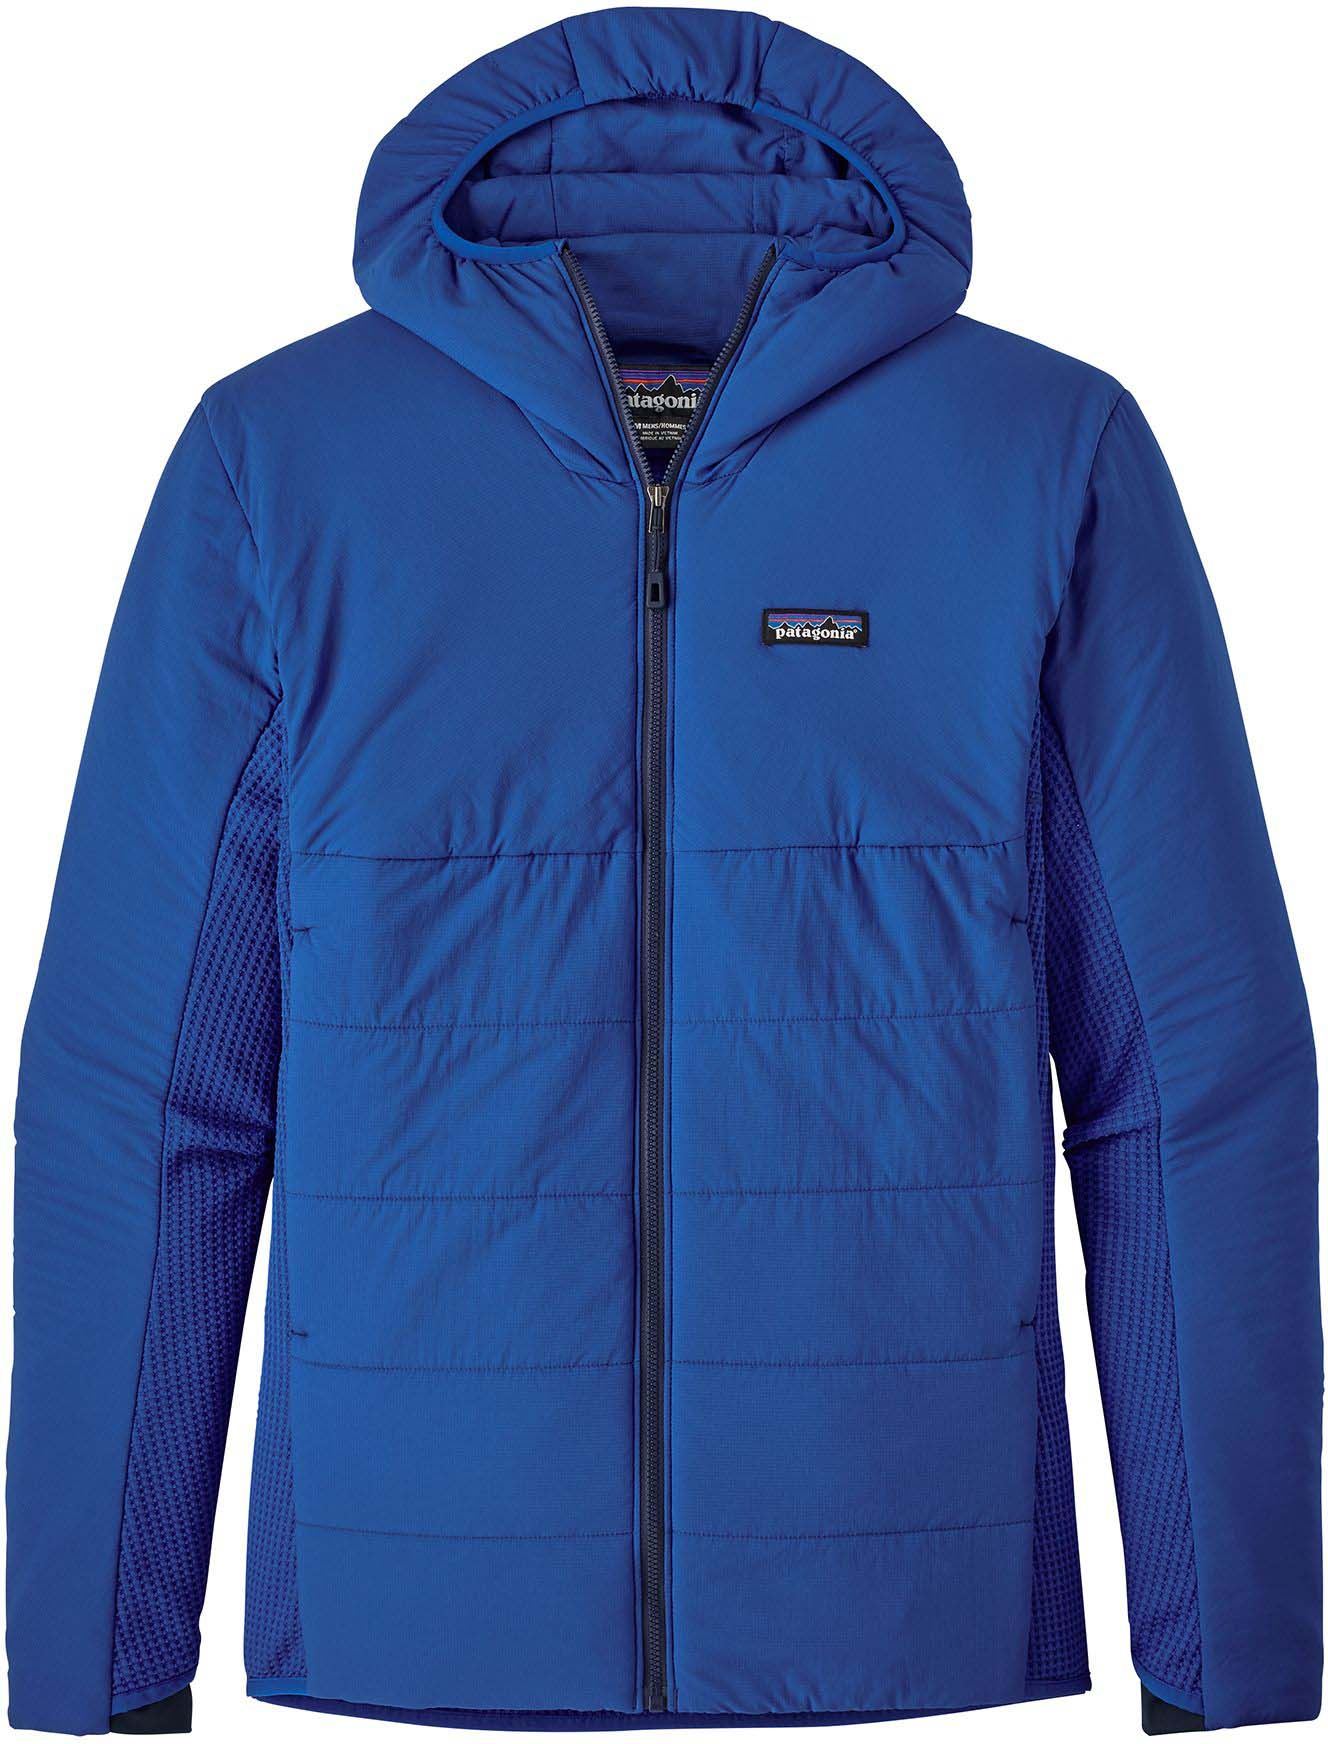 image patagonia-nano-air-light-hybrid-hoody-jpg